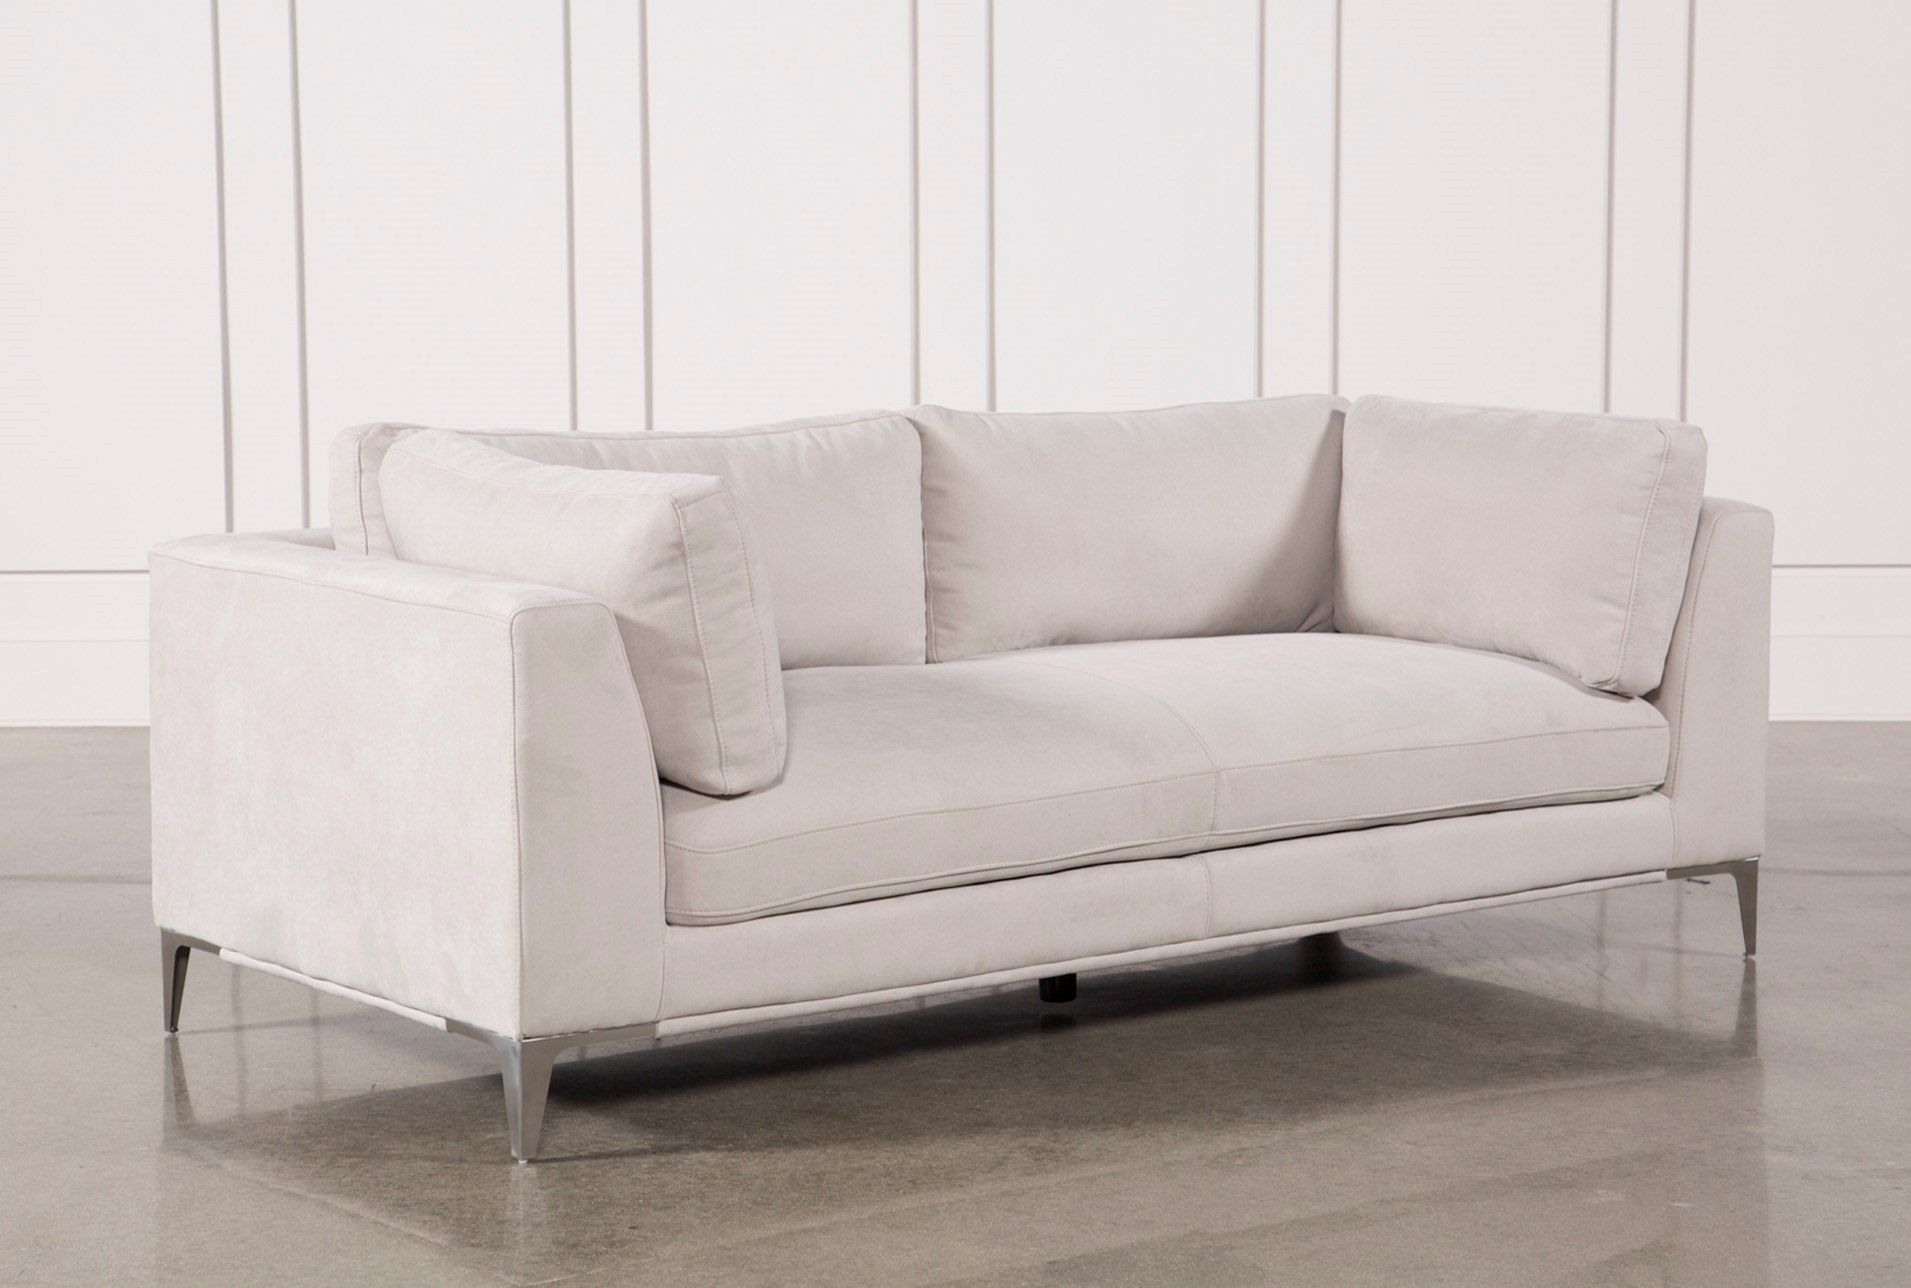 Best Apollo Light Grey Sofa W 2 Pillows Clearance 450 Was 400 x 300